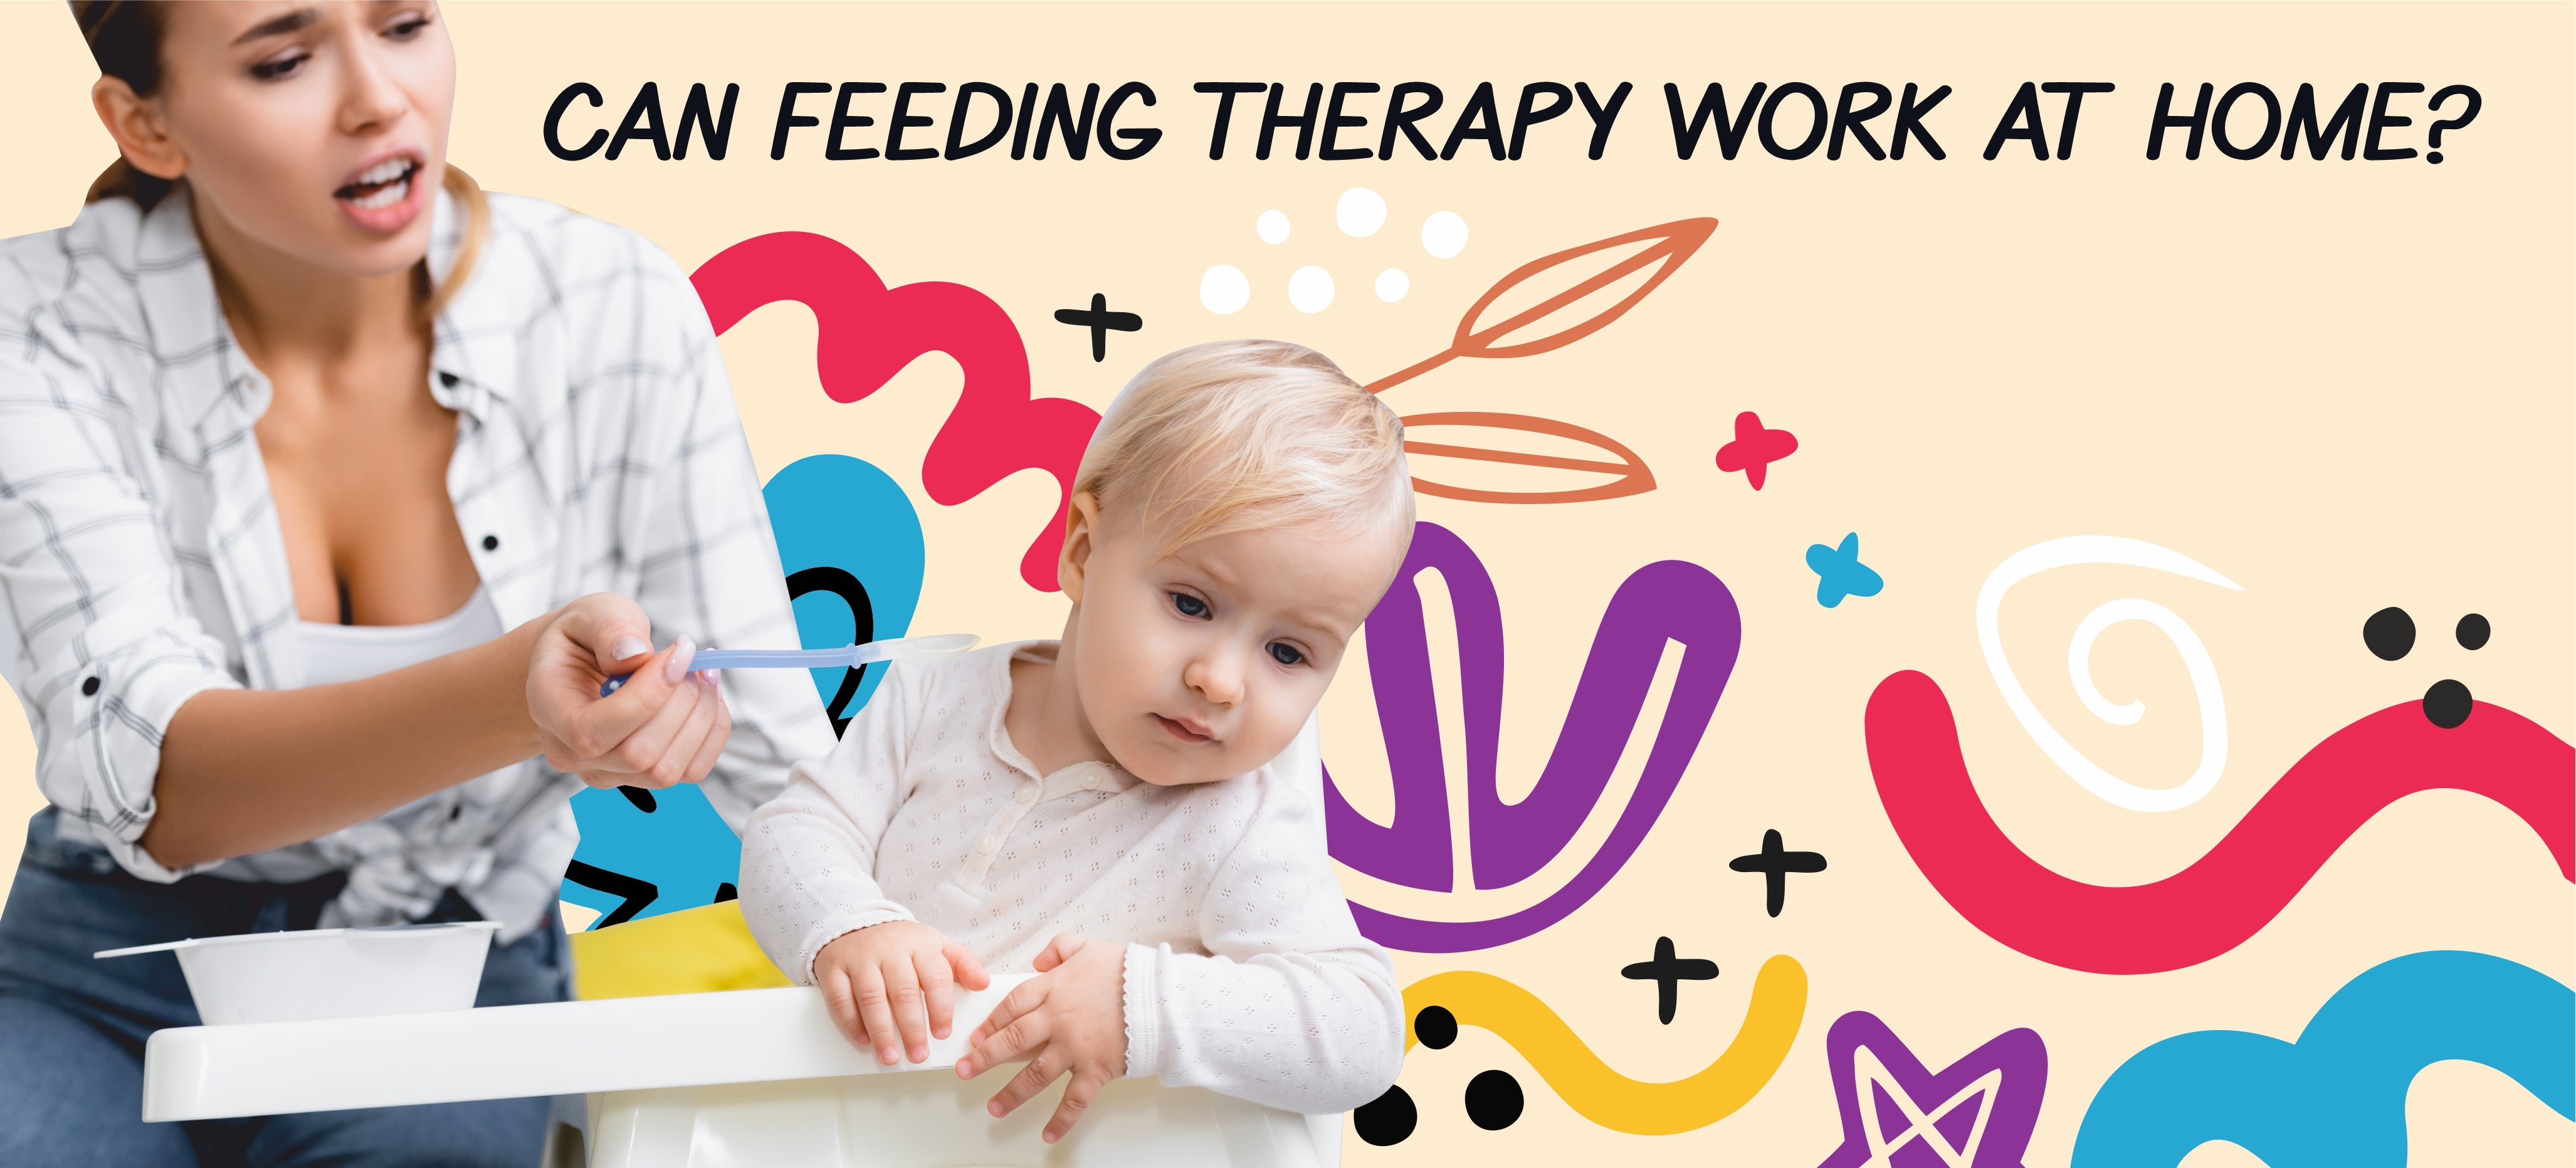 Can feeding therapy work at home?